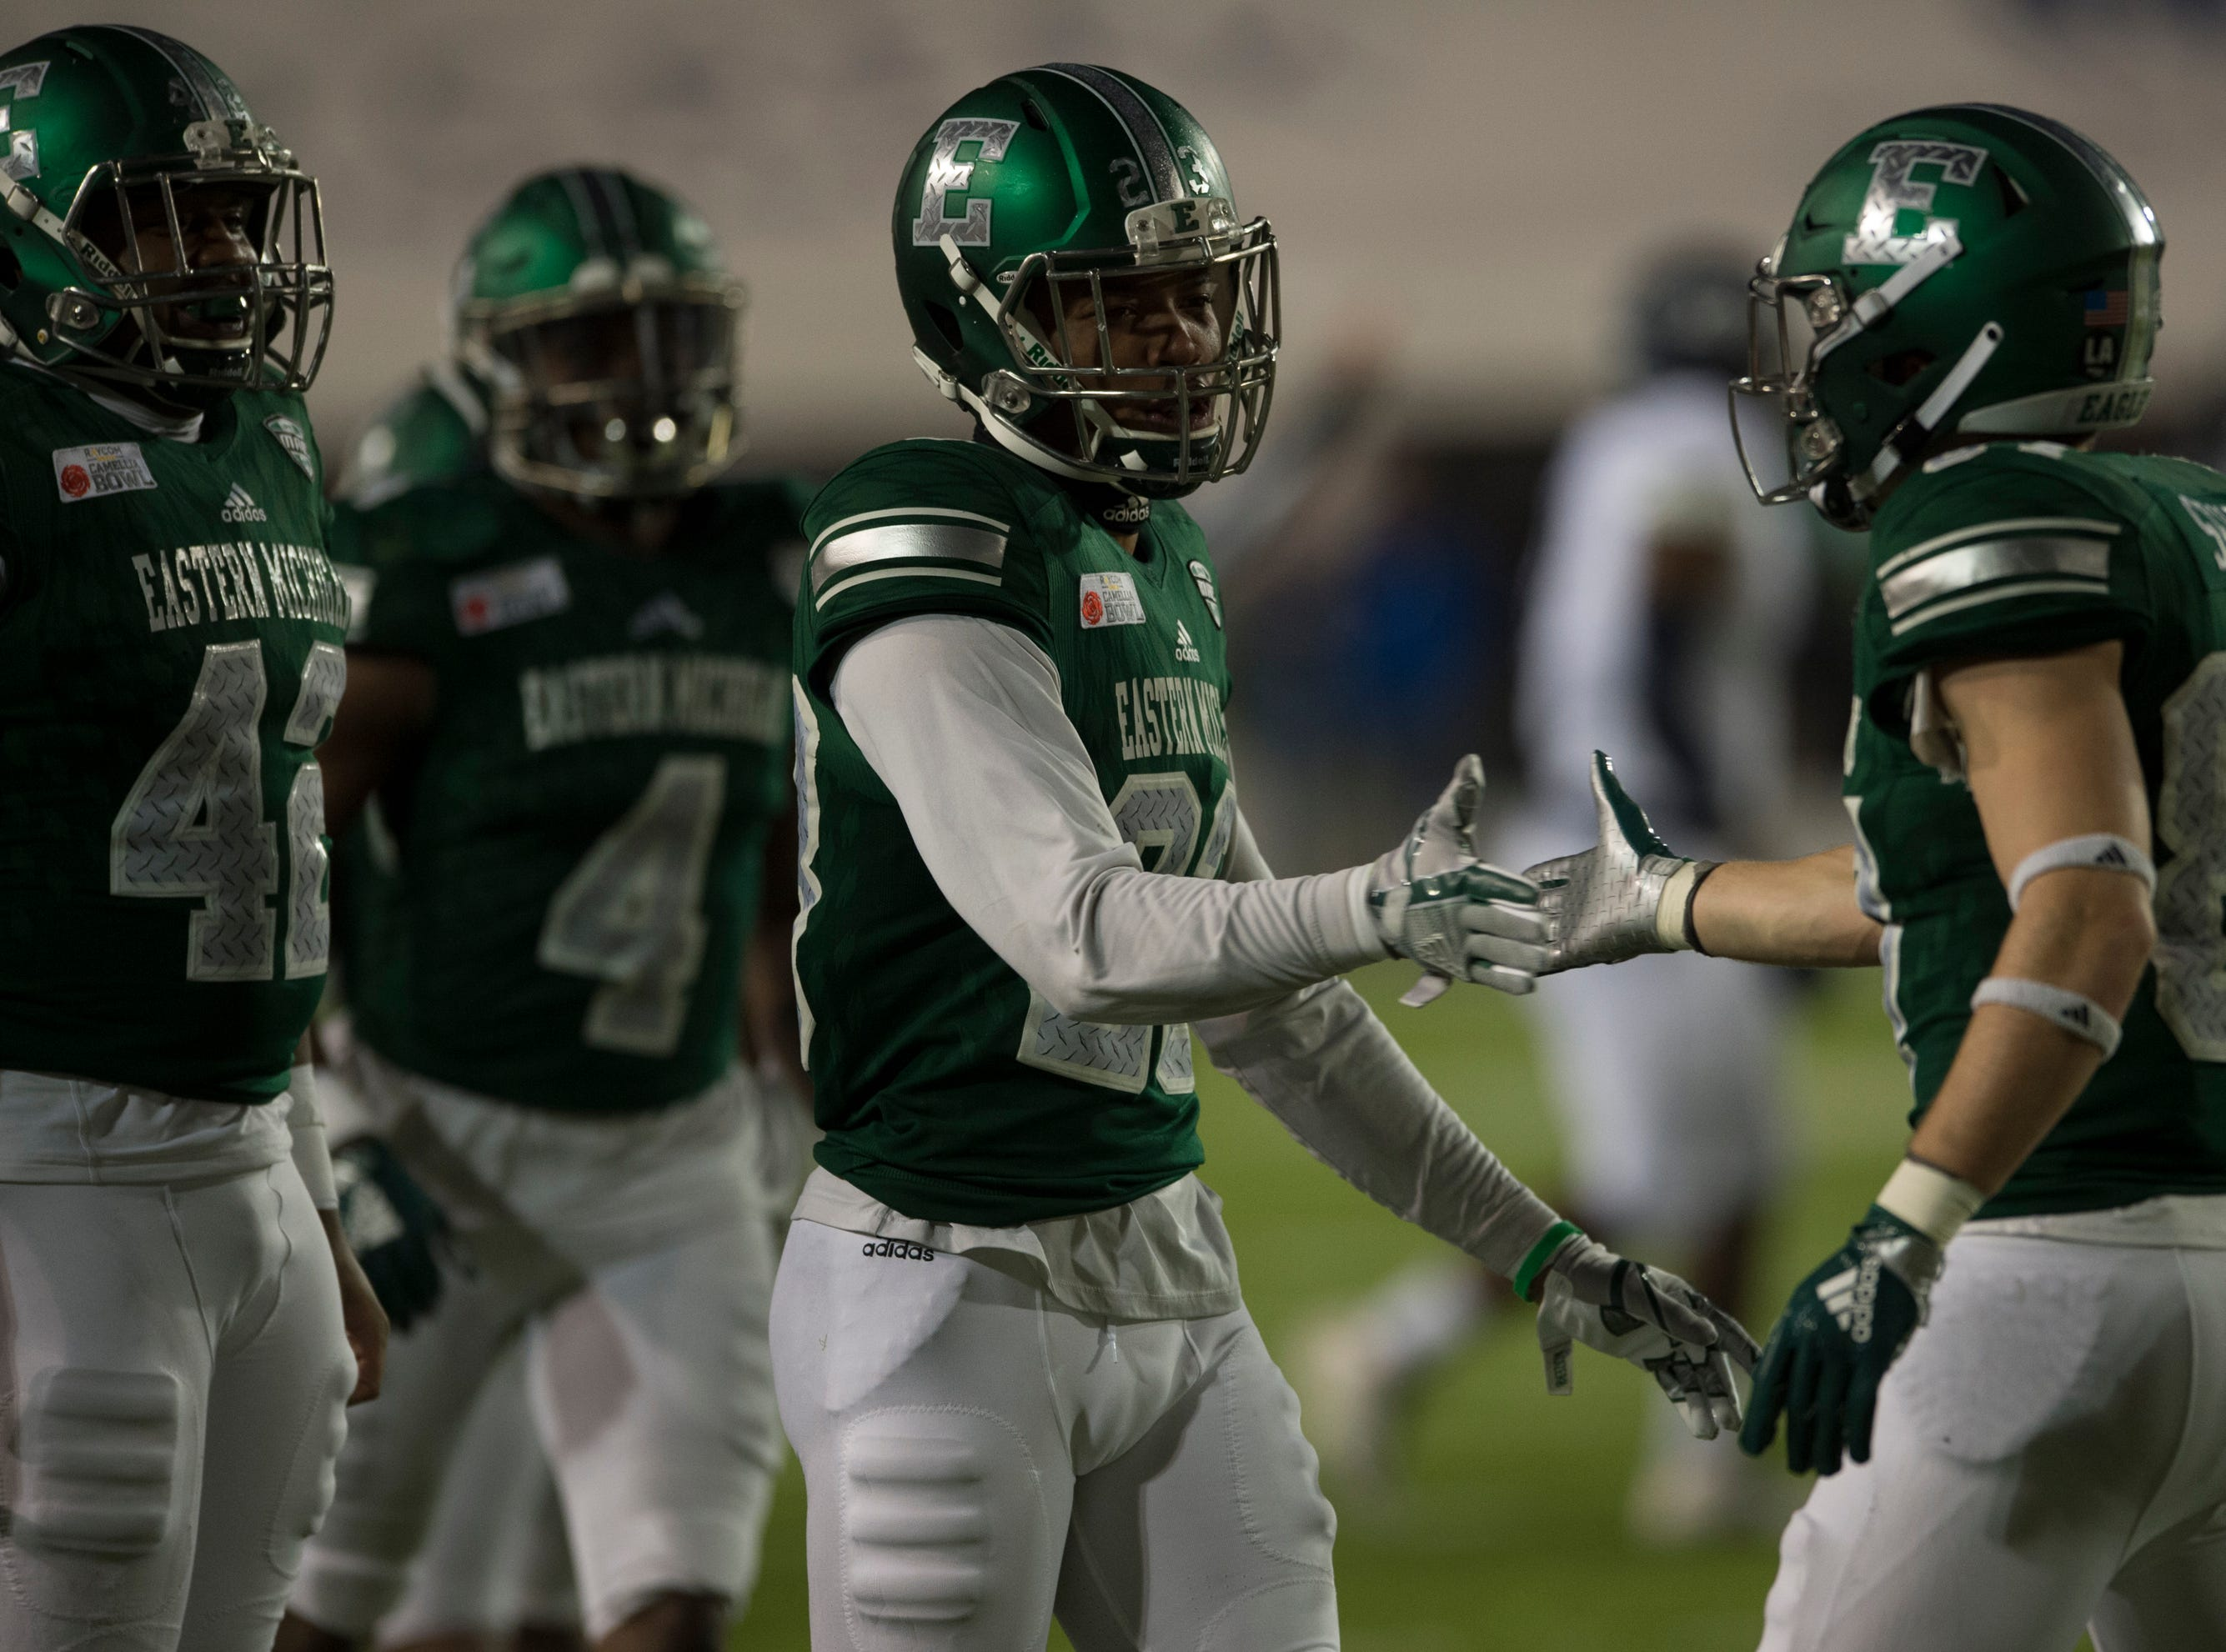 Eastern Michigan defensive back Blake Bogan (23) high fives wide receiver Mathew Sexton (87) after Sexton blocked a punt during the Camellia Bowl at Cramton Bowl in Montgomery, Ala., on Saturday, Dec. 15, 2018. Georgia Southern leads Eastern Michigan 17-7 at halftime.